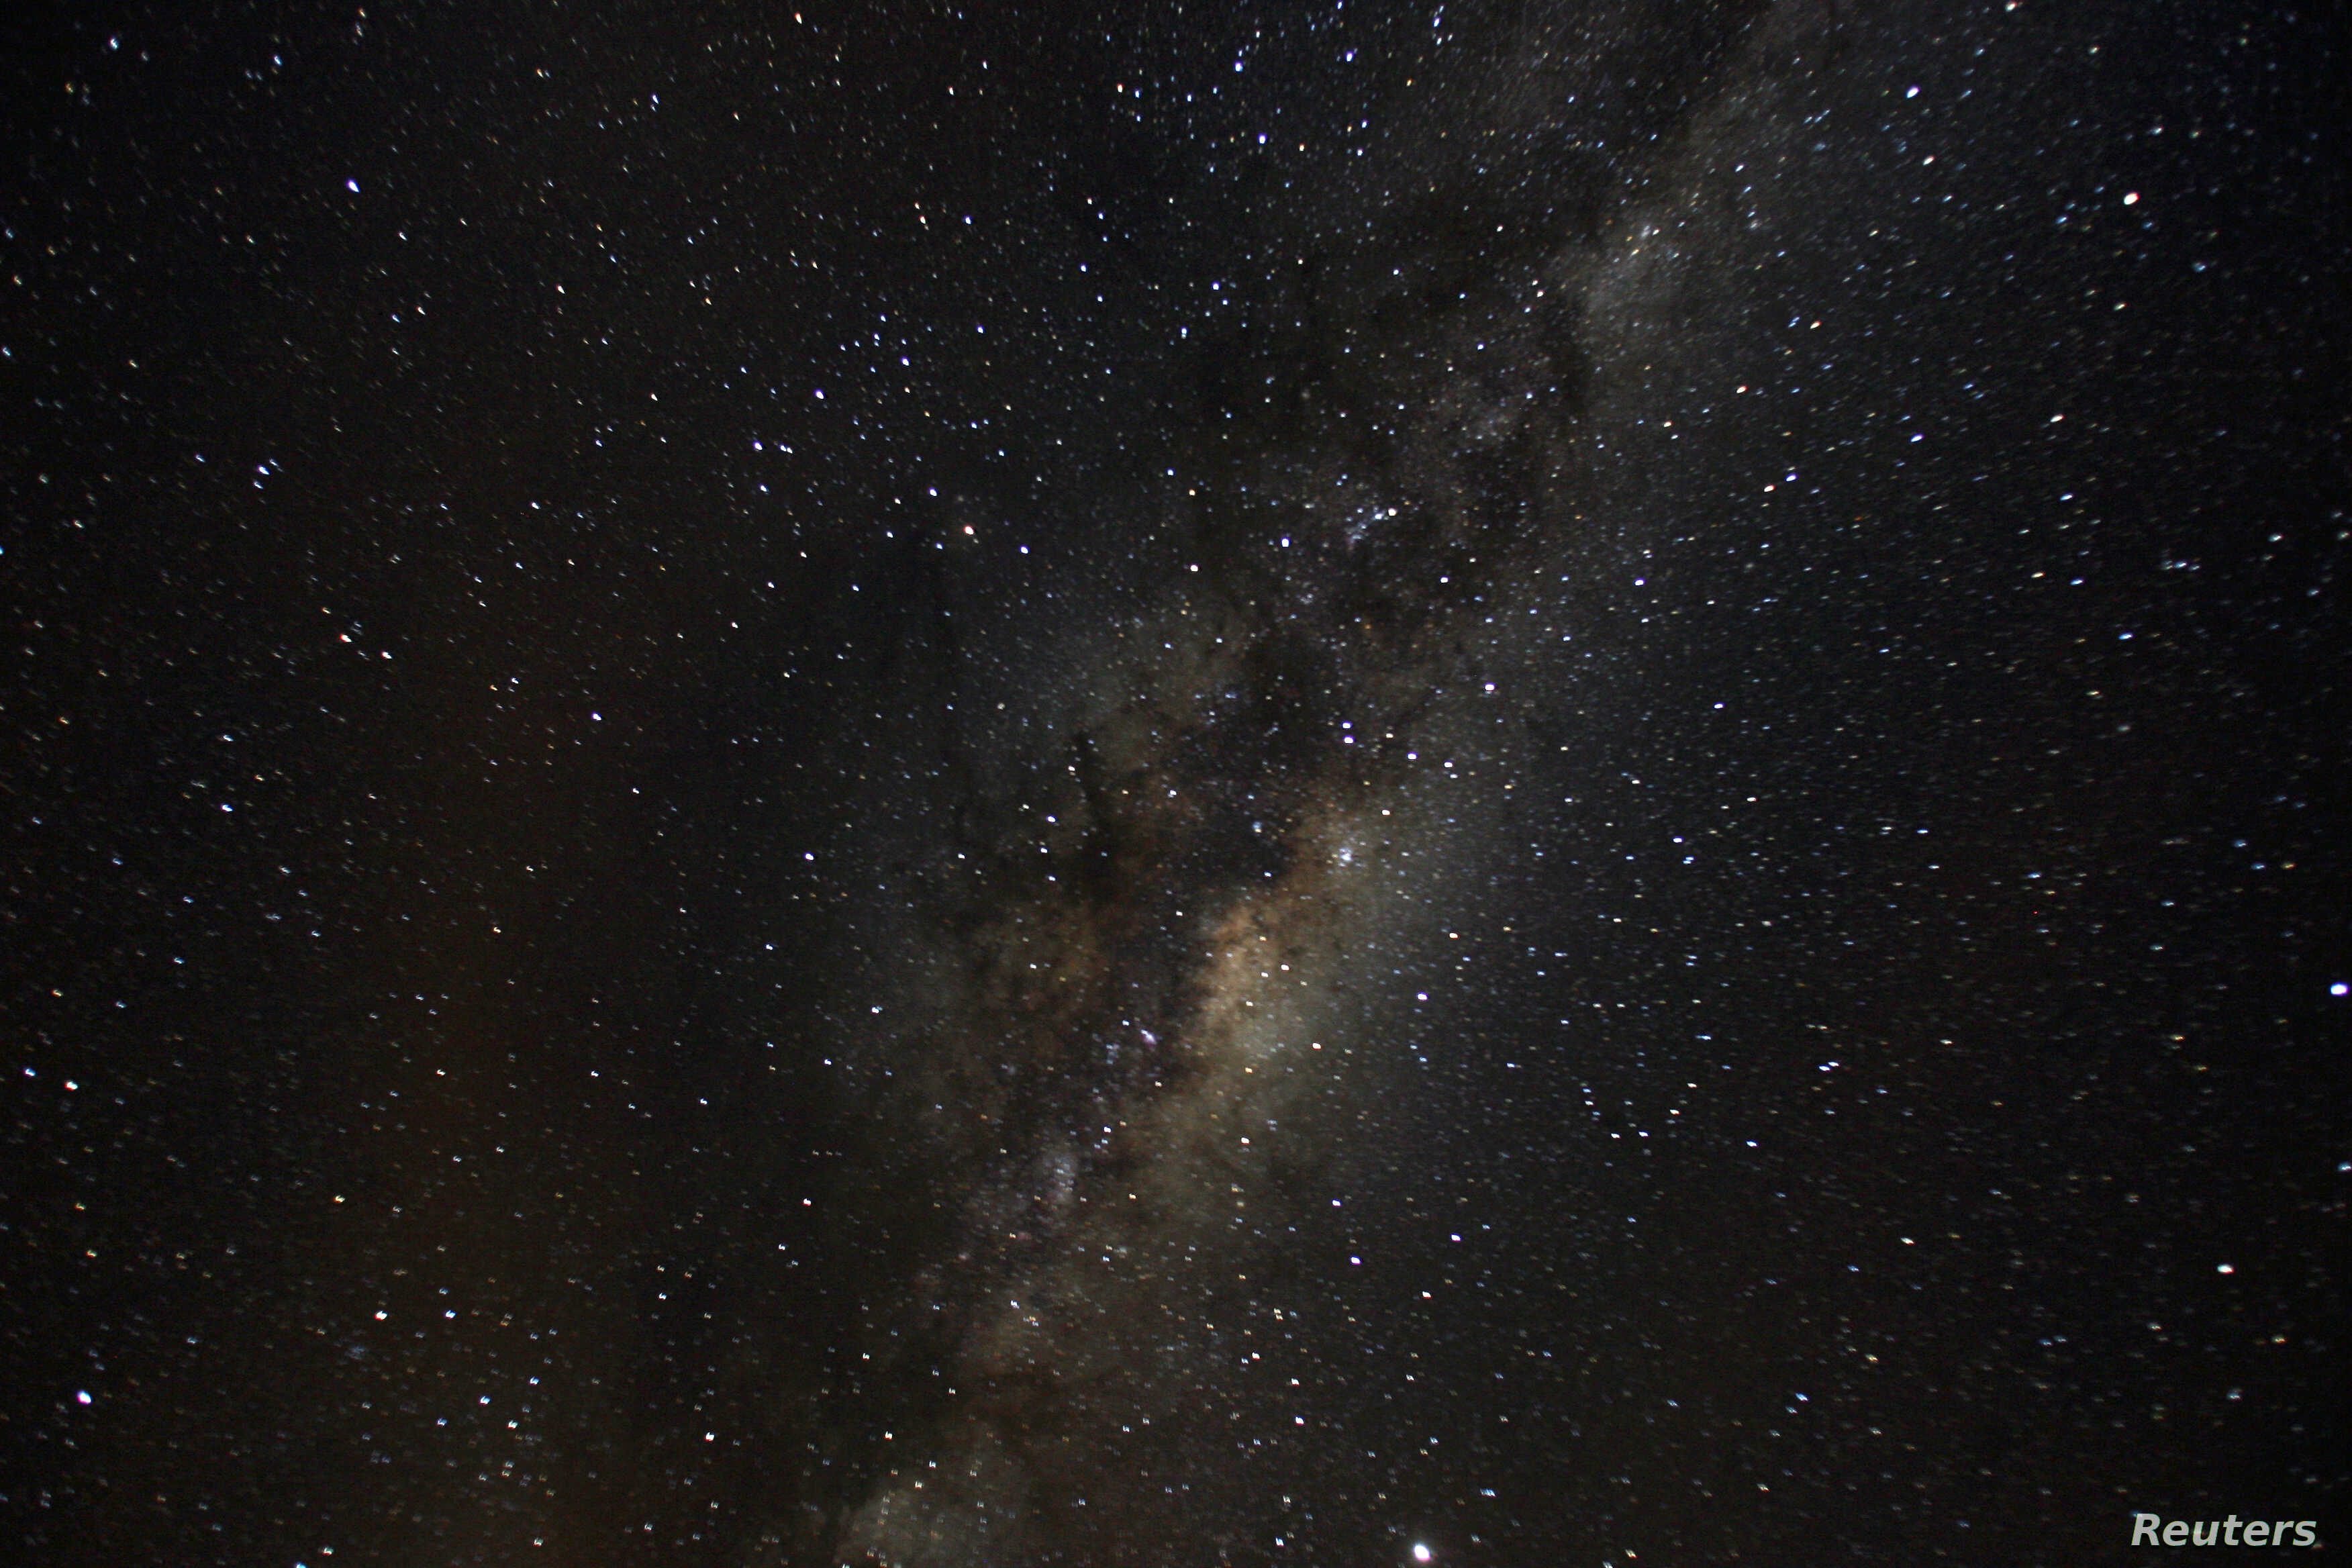 Milky Way Melded With Smaller Galaxy in Long-Ago Cosmic Crash   Voice of  America - English